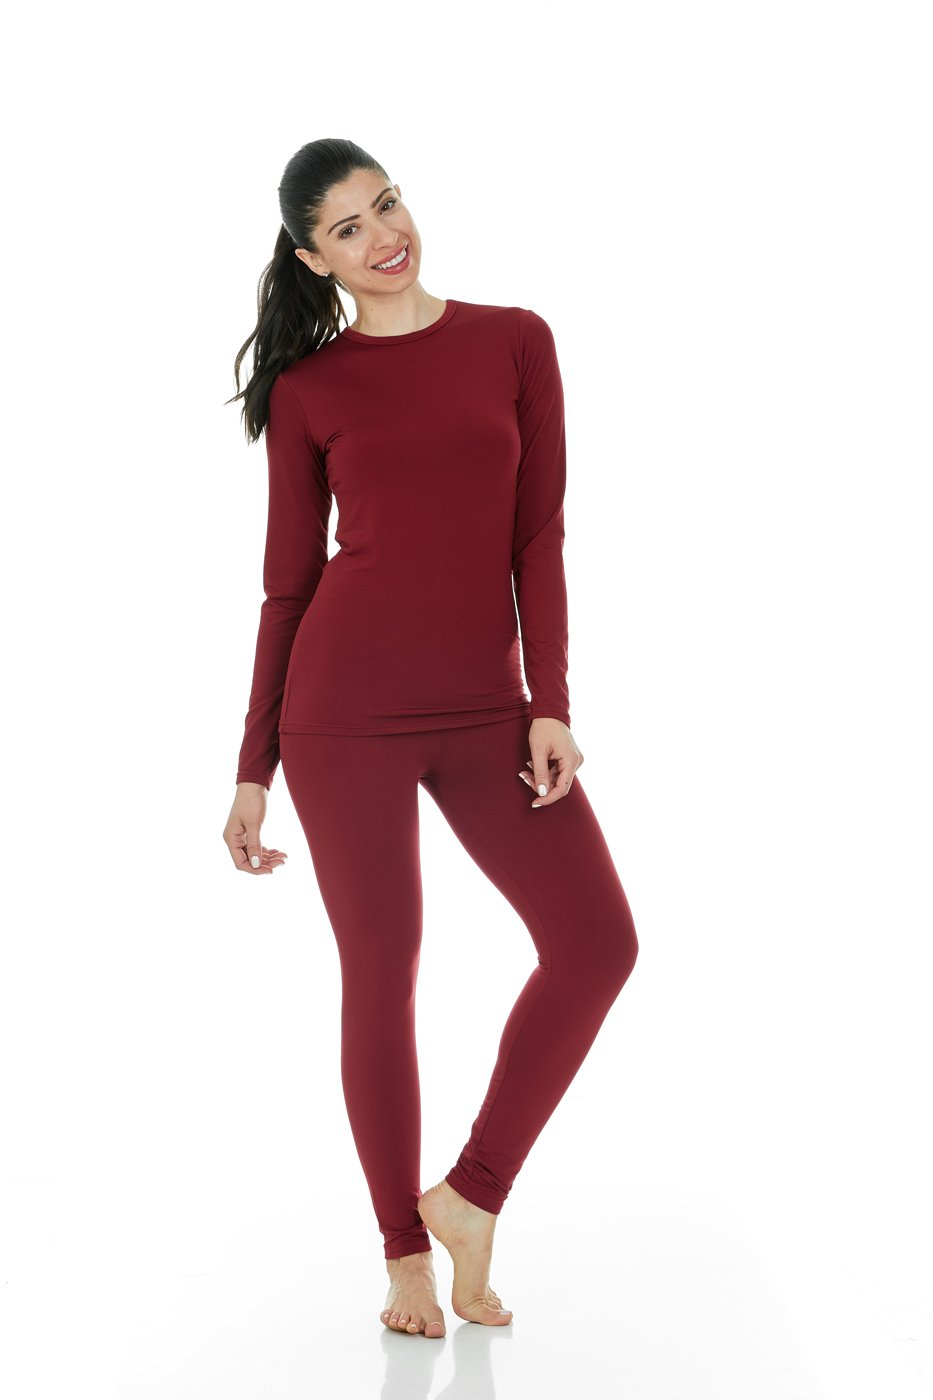 Thermajane Women's Ultra Soft Thermal Underwear Long Johns Set with Fleece Lined (X-Large, Red) by Thermajane